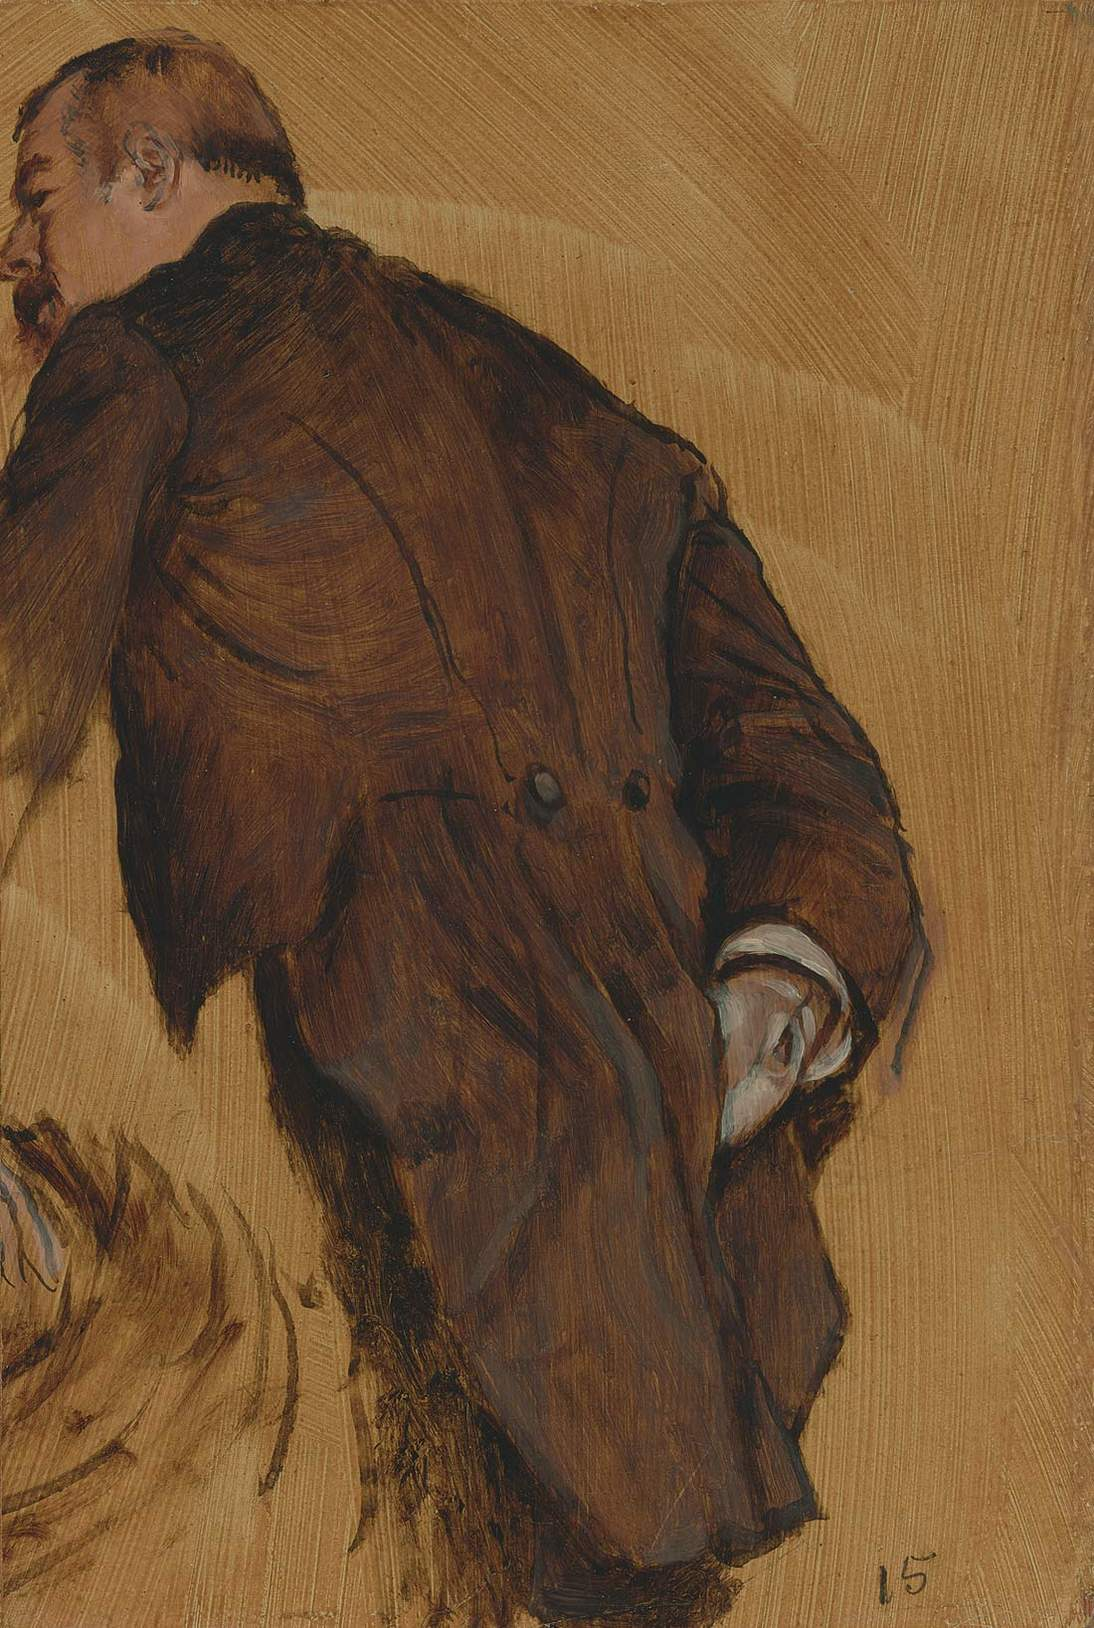 "Attributed to Edgar Degas, ""The Impresario,"" ca. 1877. Oil on paper board, 15 x 10 in. (38.1 x 25.4 cm). Fine Arts Museums of San Francisco, Gift of Mr. and Mrs. Louis A. Benoist, 1956.72"